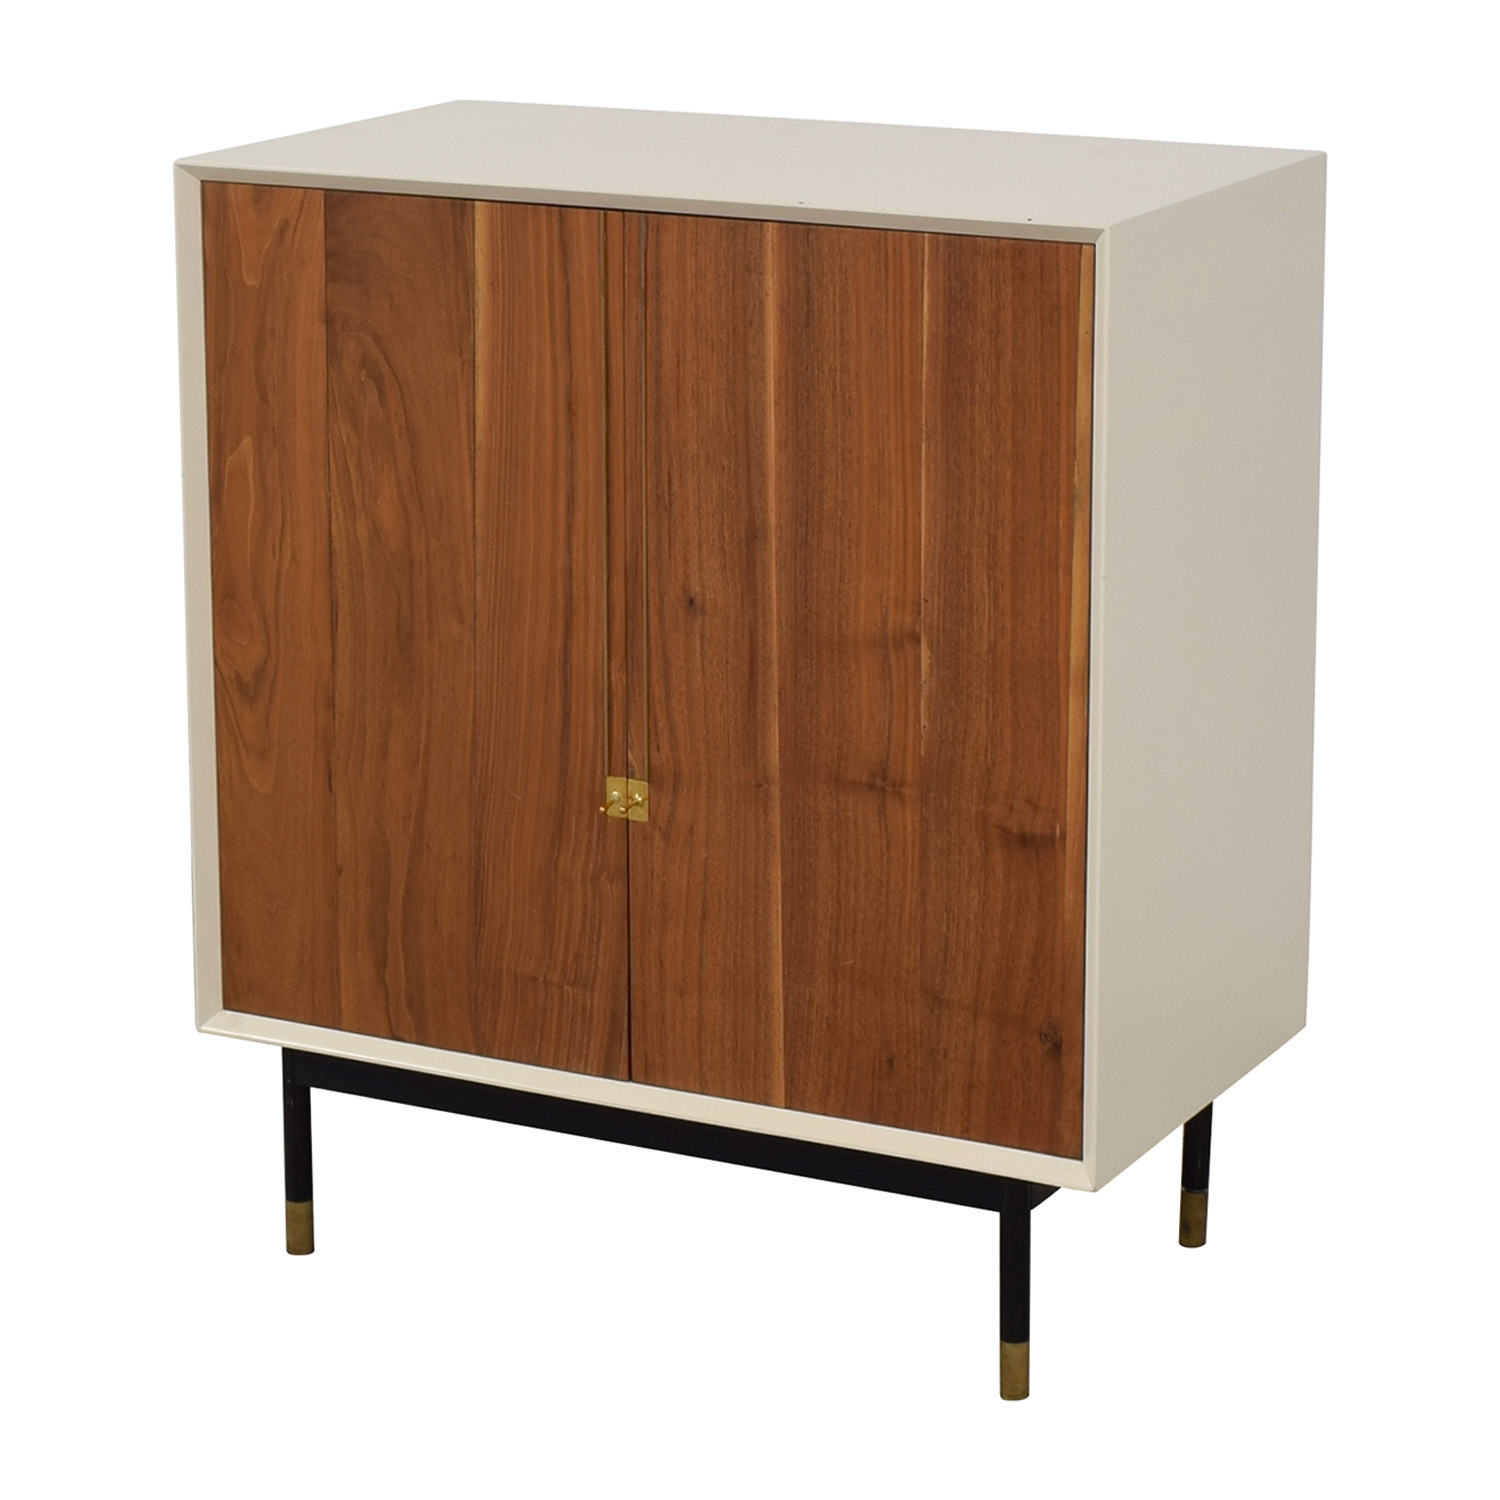 Organic Modernism Deco Credenza / Cabinets & Sideboards